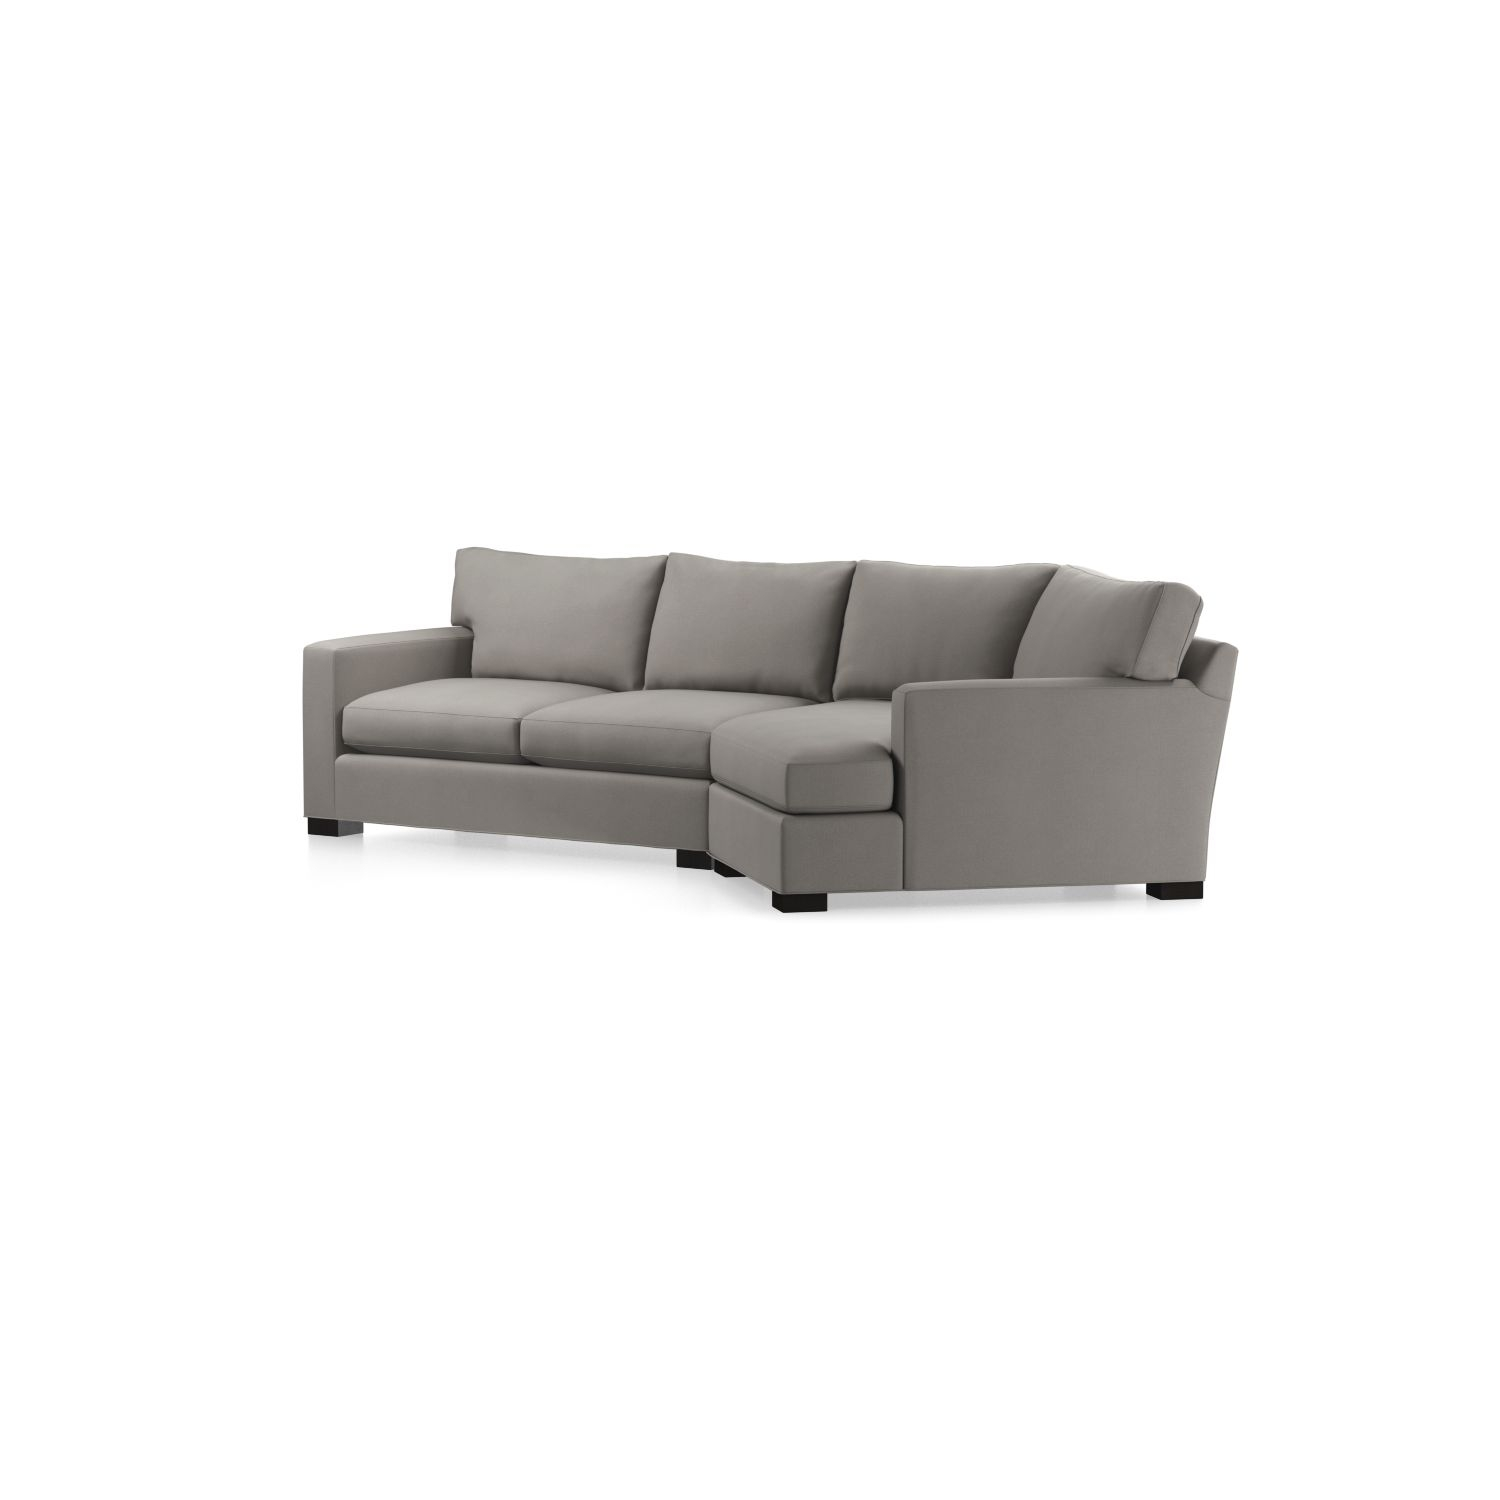 Axis Ii 2 Piece Right Arm Angled Chaise Sectional Sofa In Axis Regarding Angled Chaise Sofas (View 5 of 10)